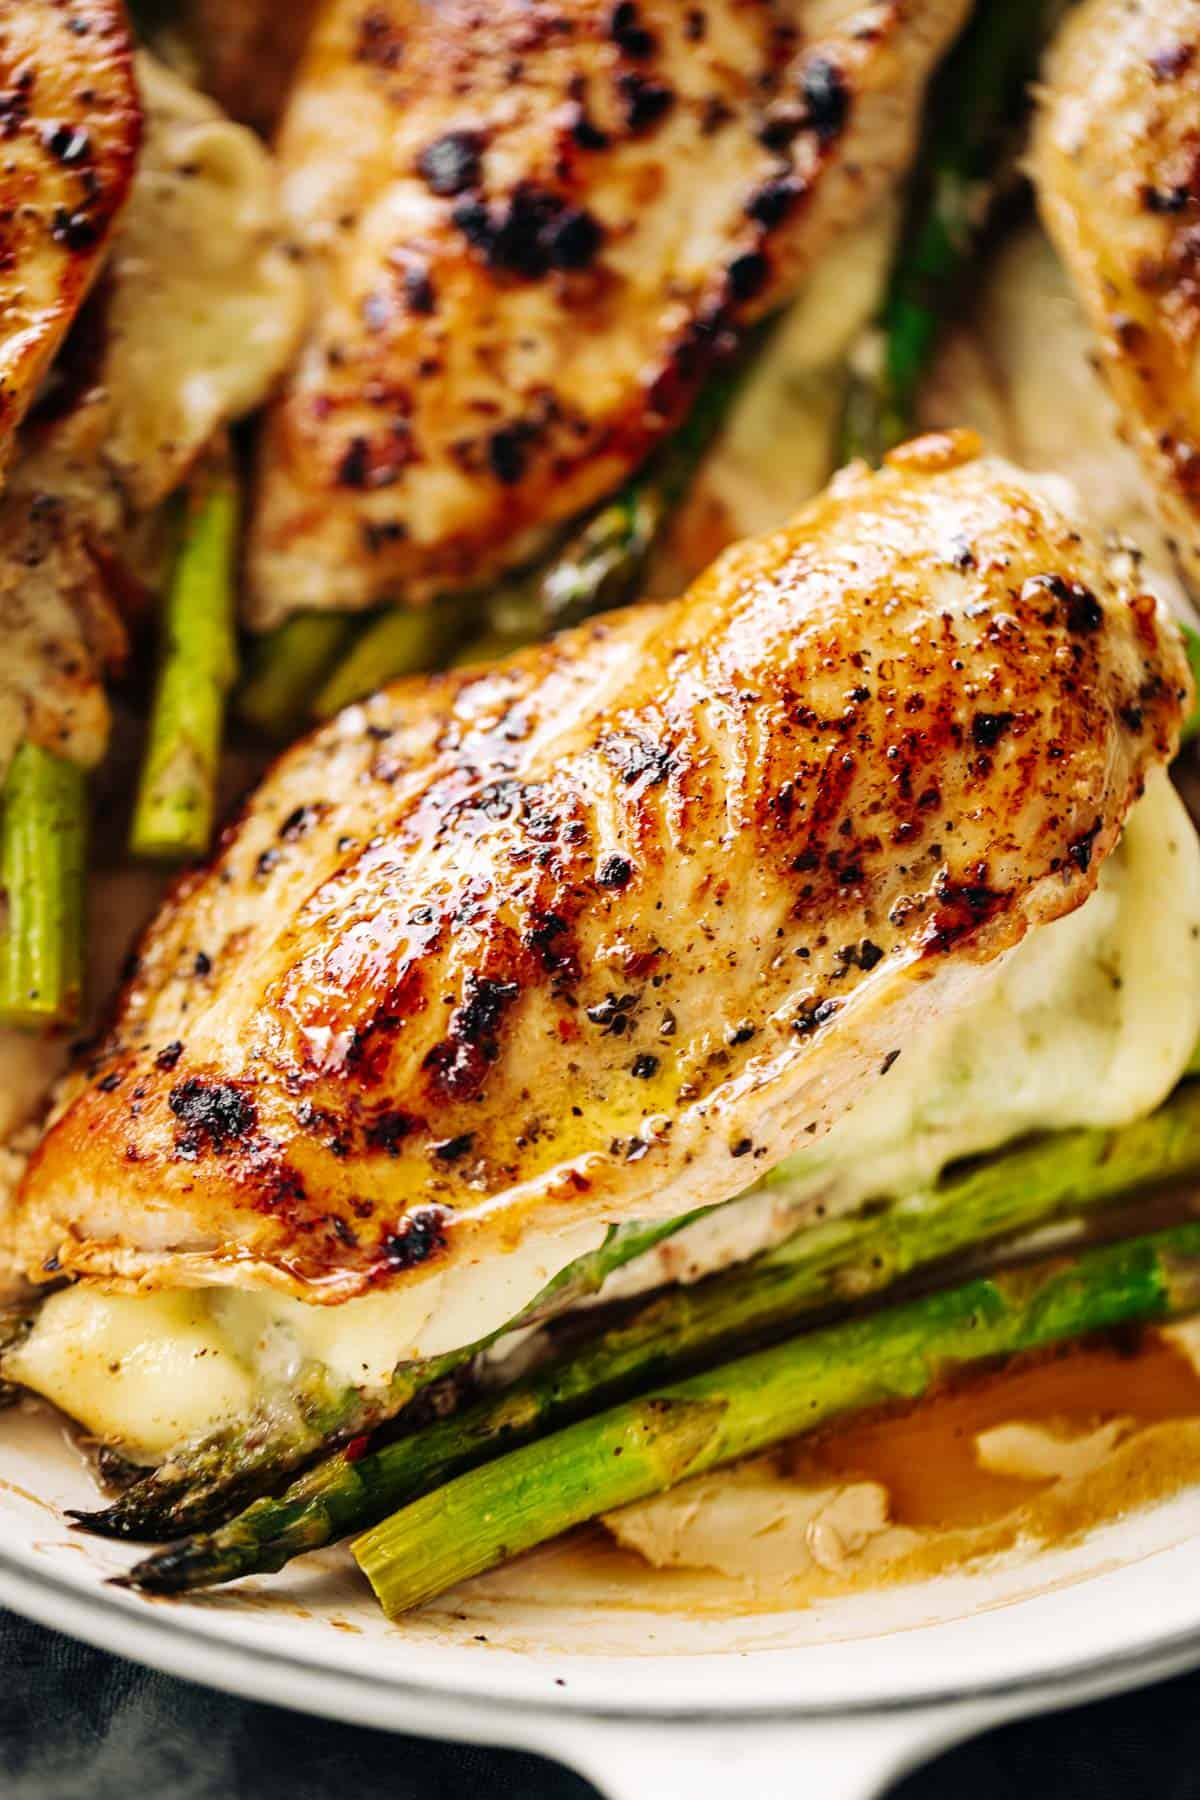 Four asparagus and mozzarella cheese stuffed chicken breasts in a white casserole dish | cafedelites.com